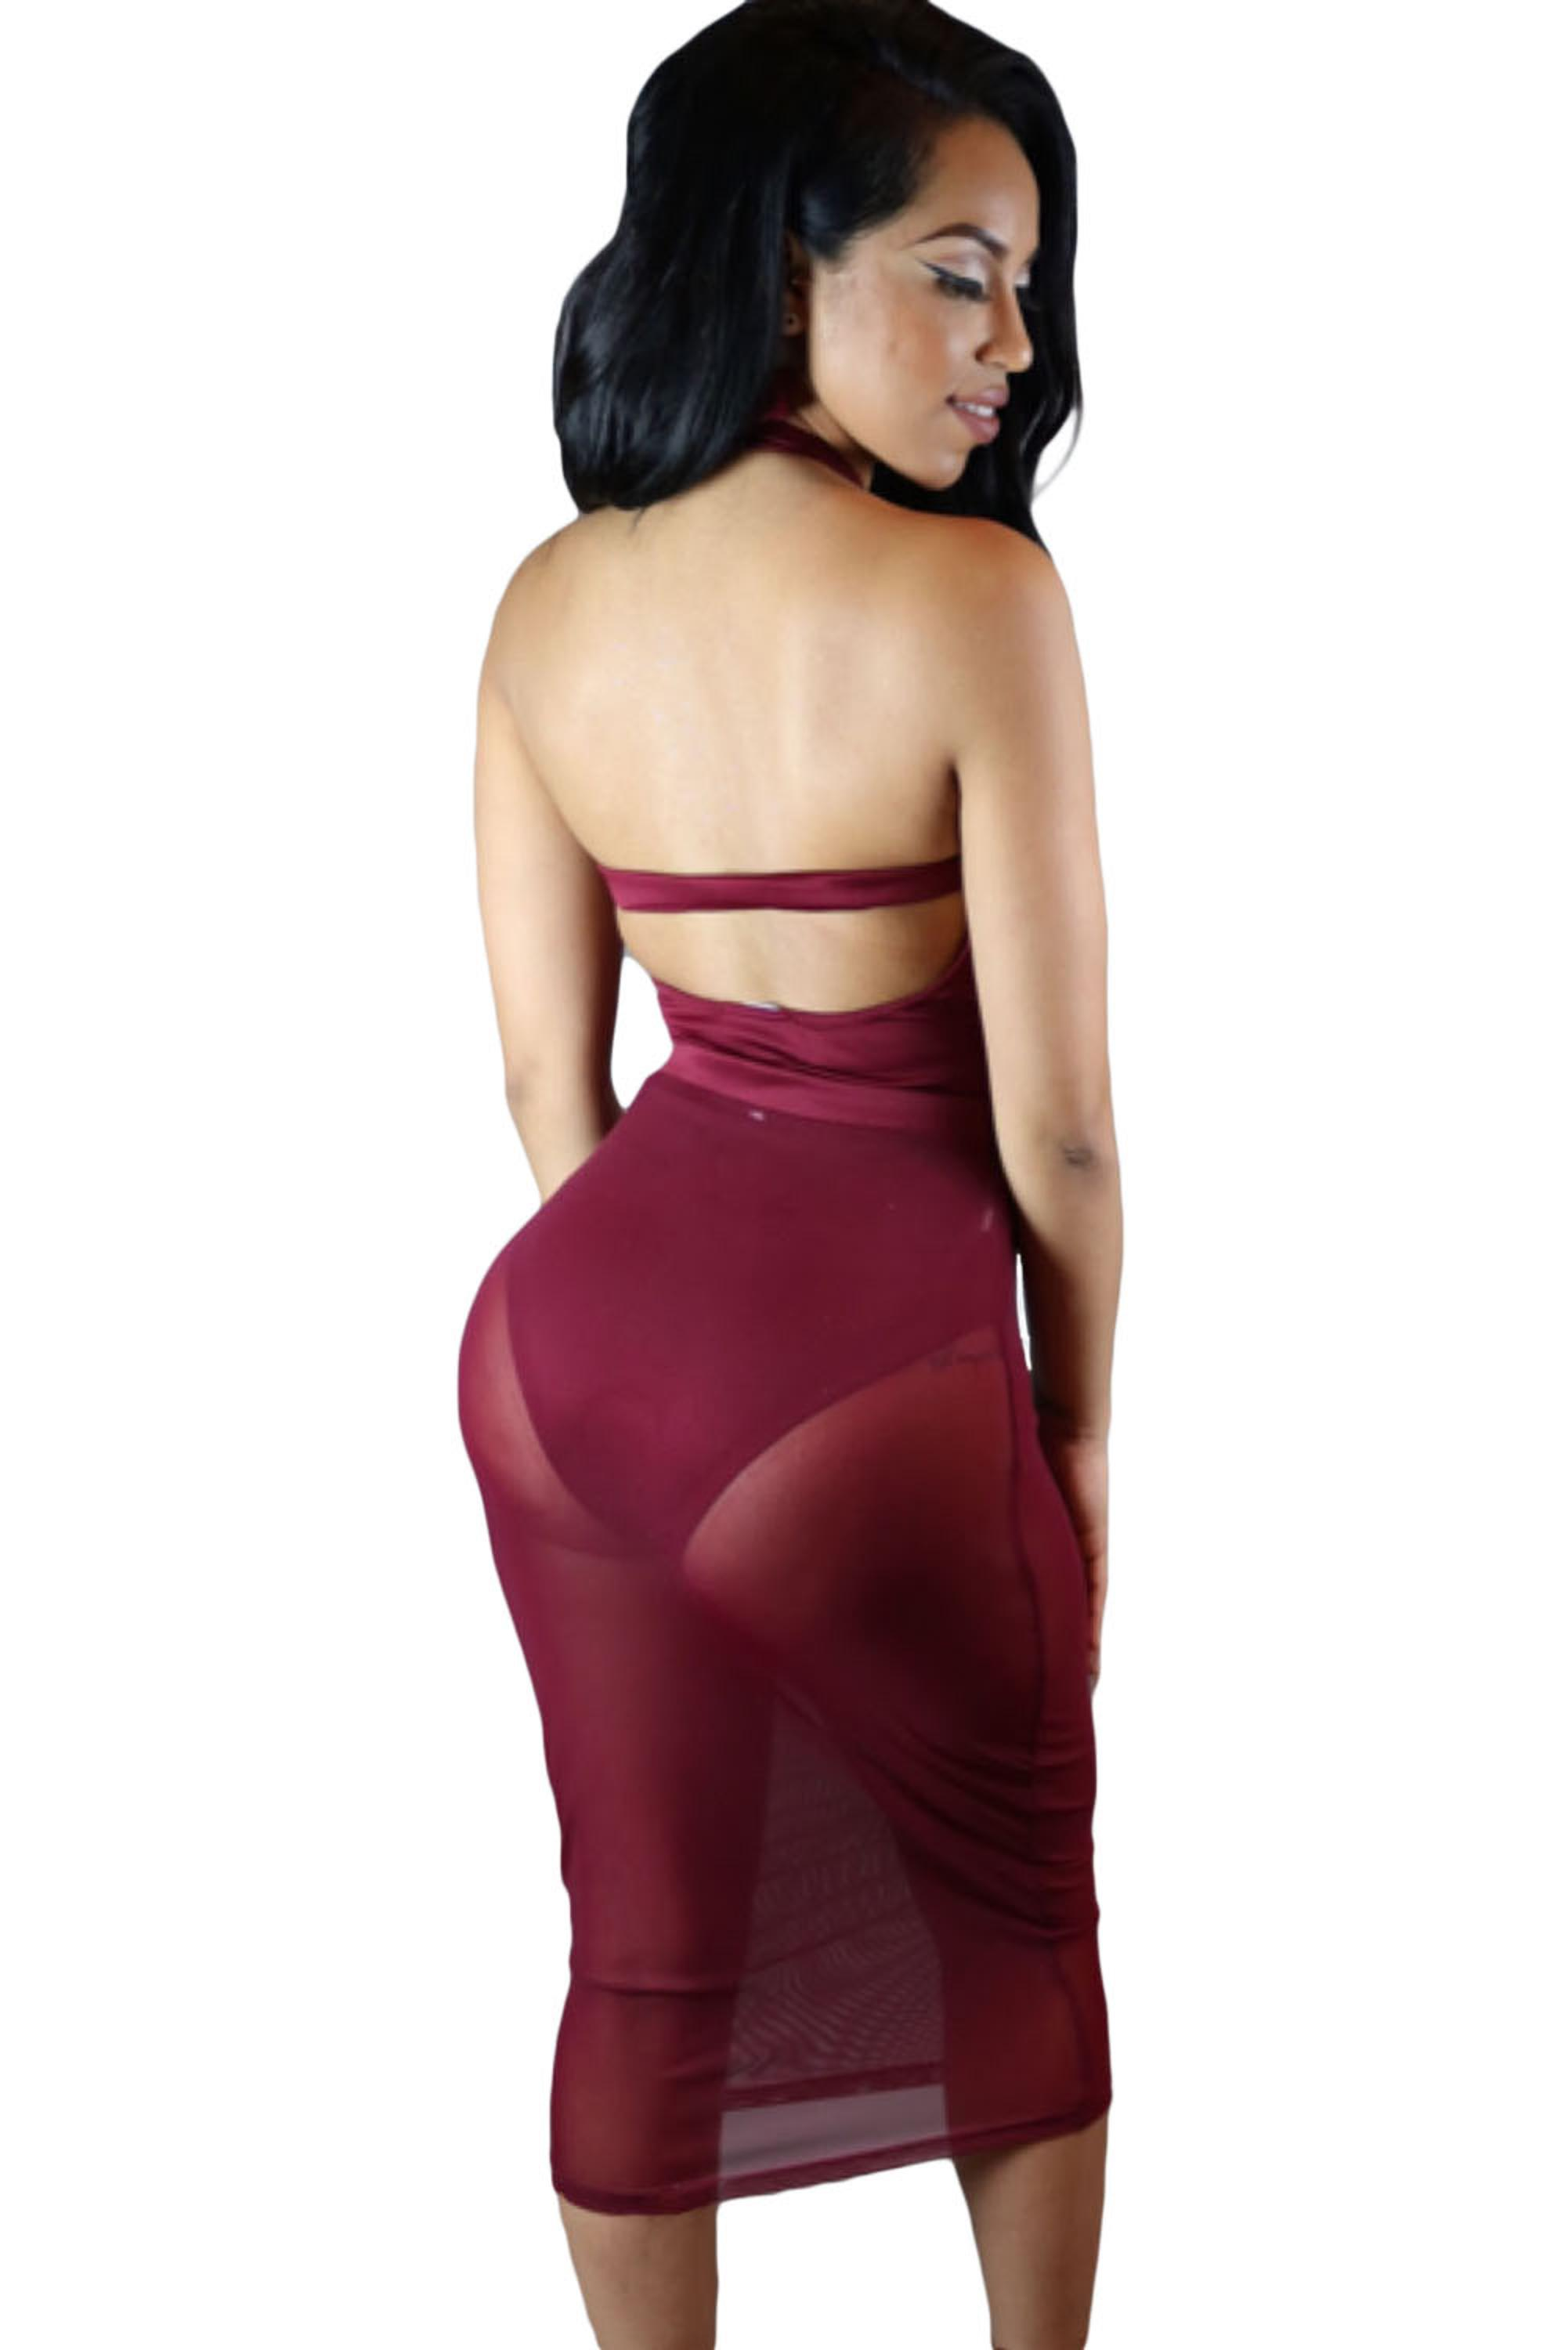 Wine-Caged-Bandage-Bodysuit-with-Sheer-Mesh-Skirt-LC64013-3-2